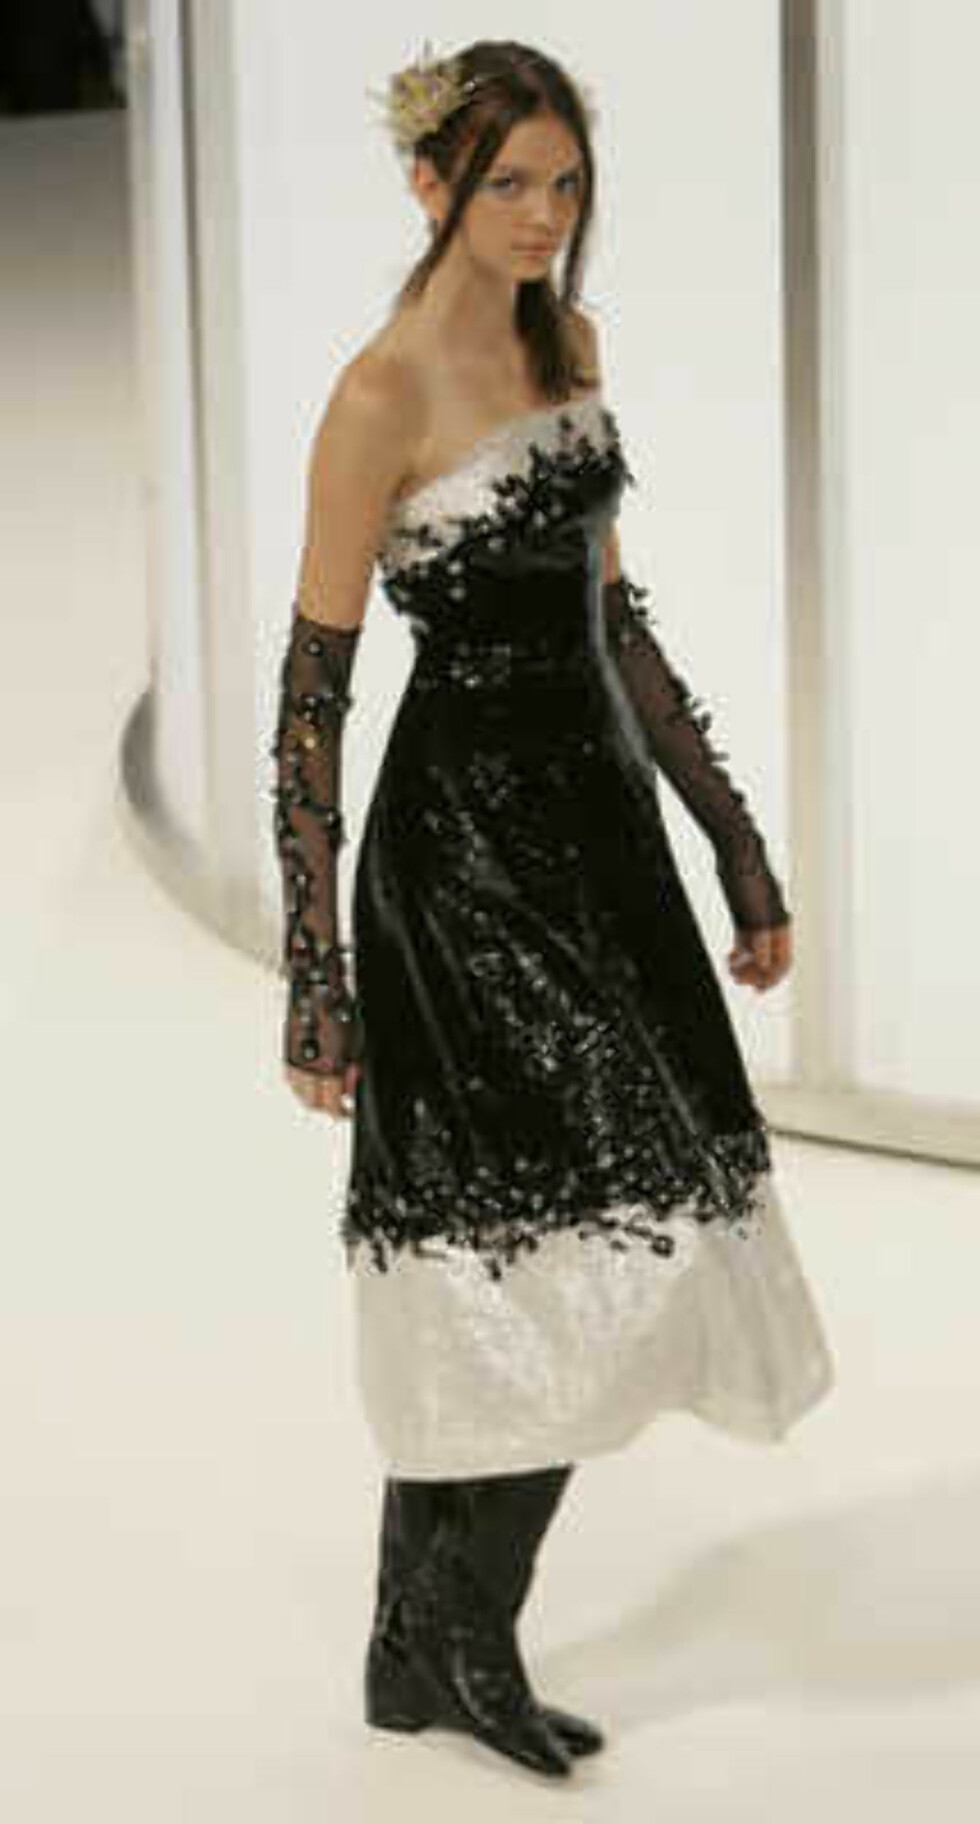 A model presents the creation of the German designer Karl Lagerfeld during the Chanel 2006 Spring-Summer Haute Couture fashion show in Hong Kong Friday, March 24, 2006.  (AP Photo/Kin Cheung) Foto: AP